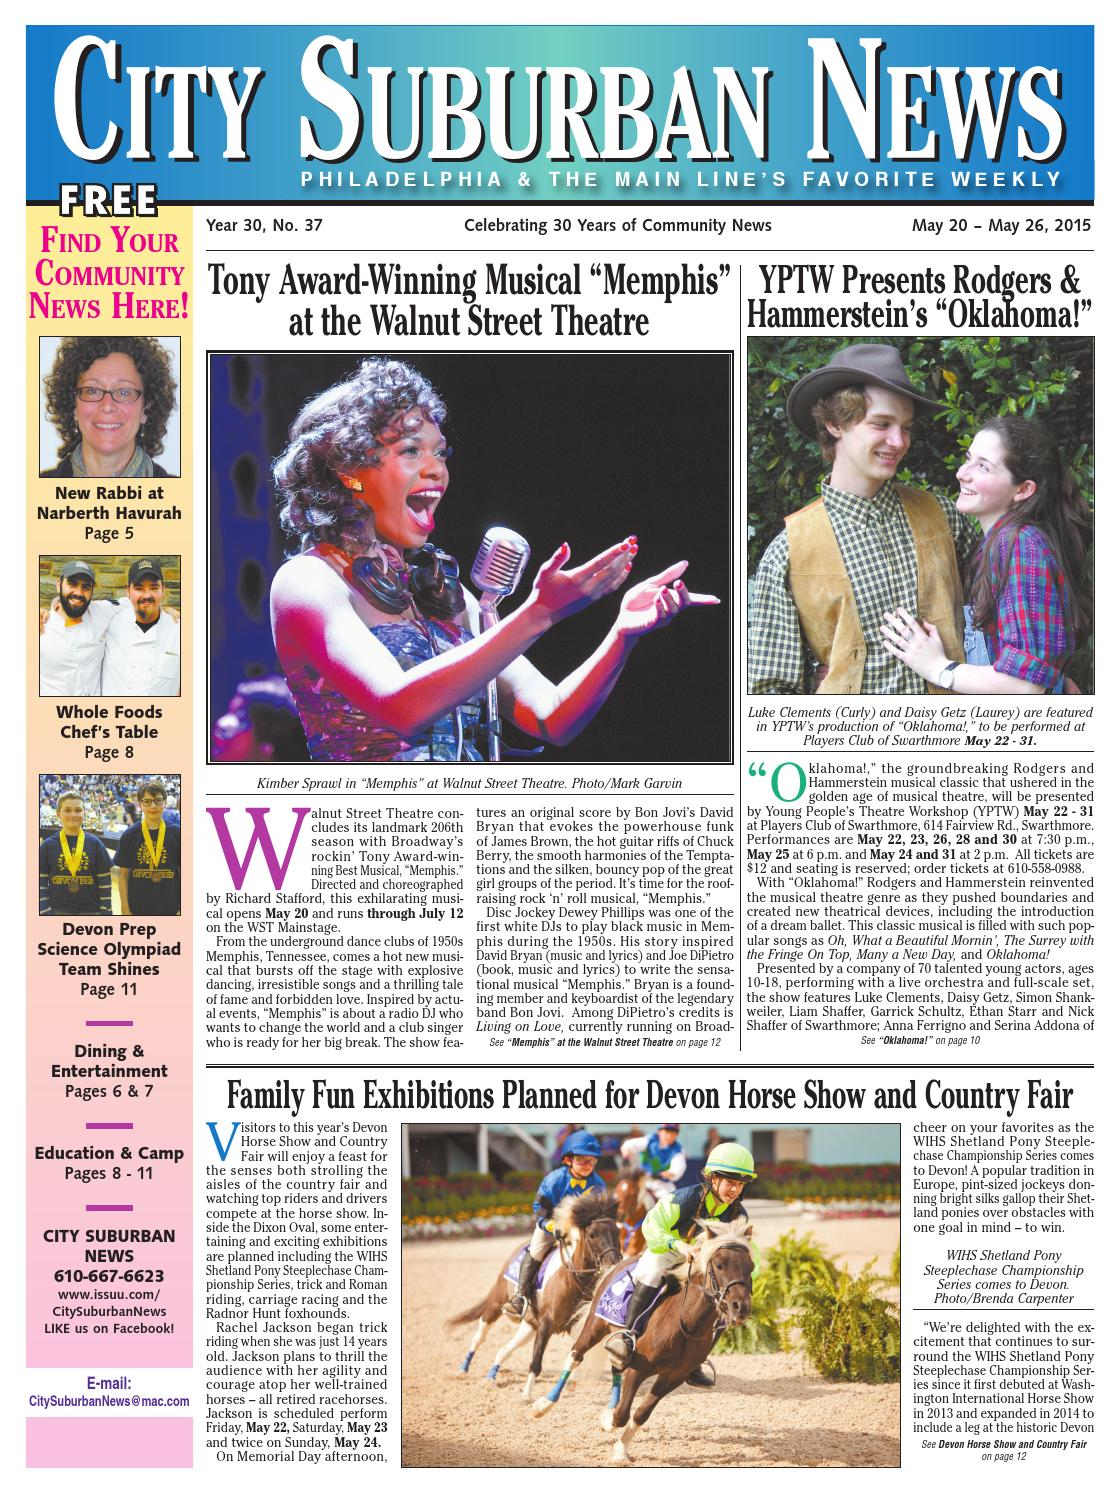 City suburban news 52015 issue by city suburban news issuu fandeluxe Gallery